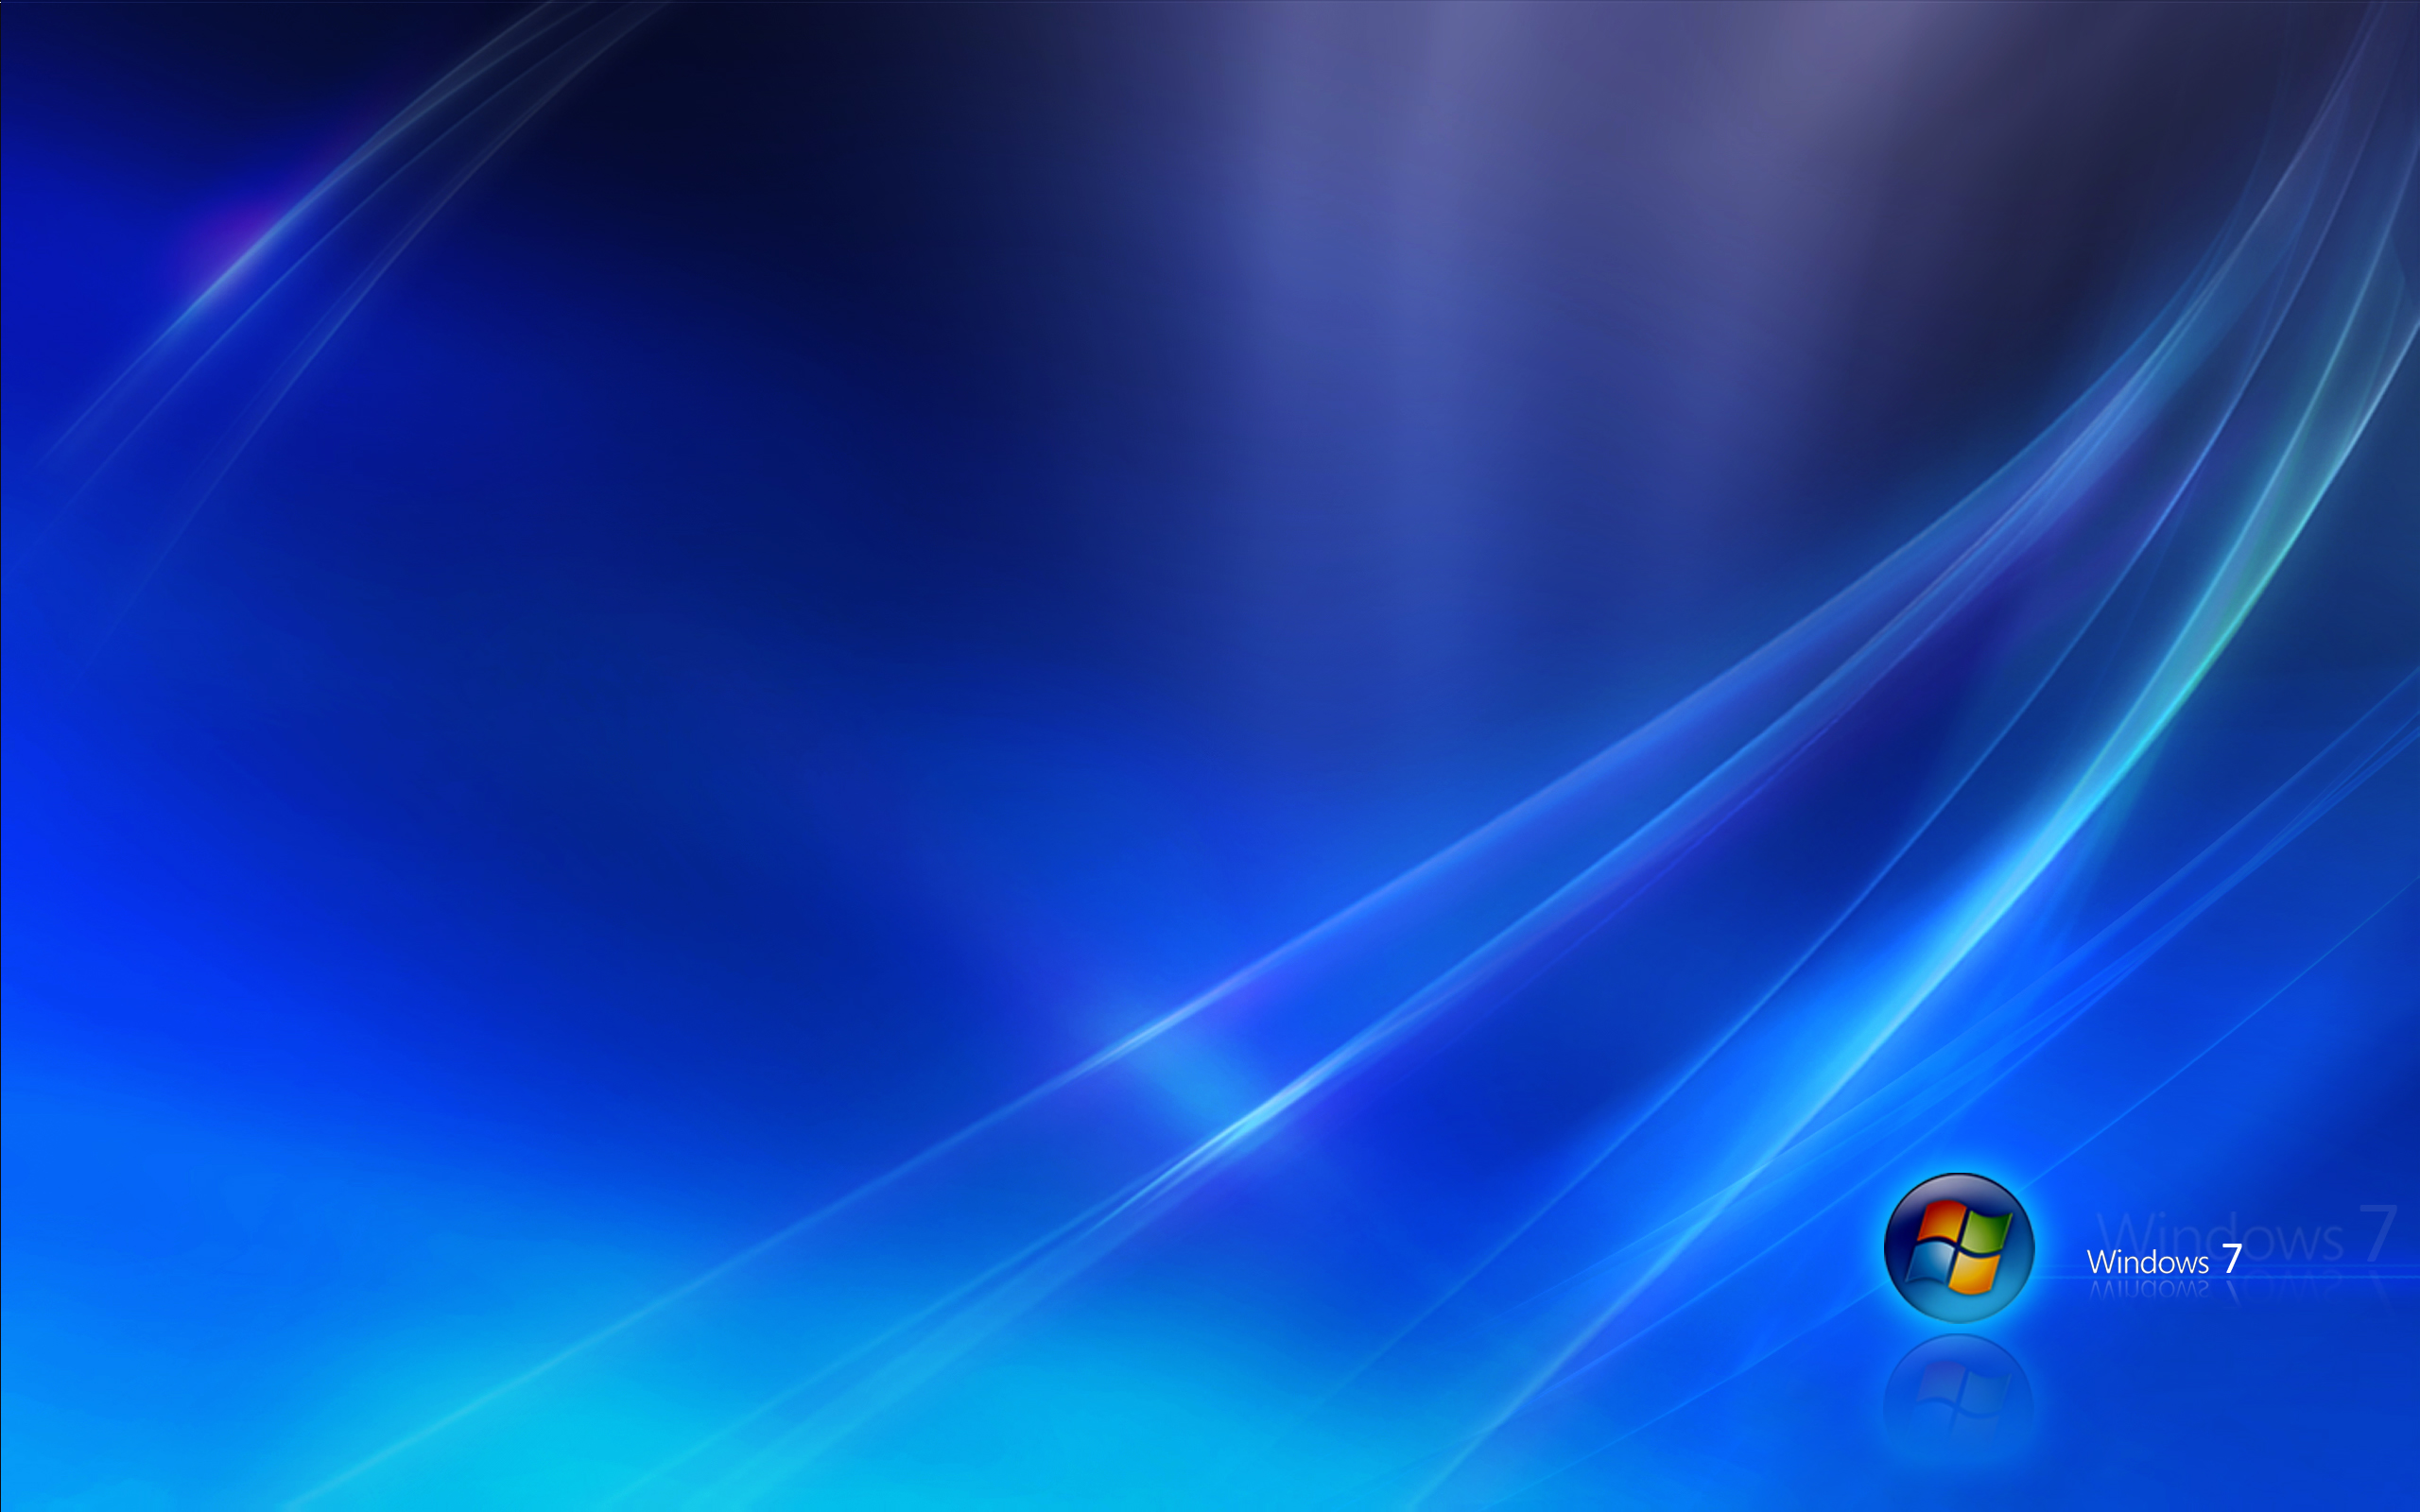 2560x1600 Windows 7 blue desktop PC and Mac wallpaper